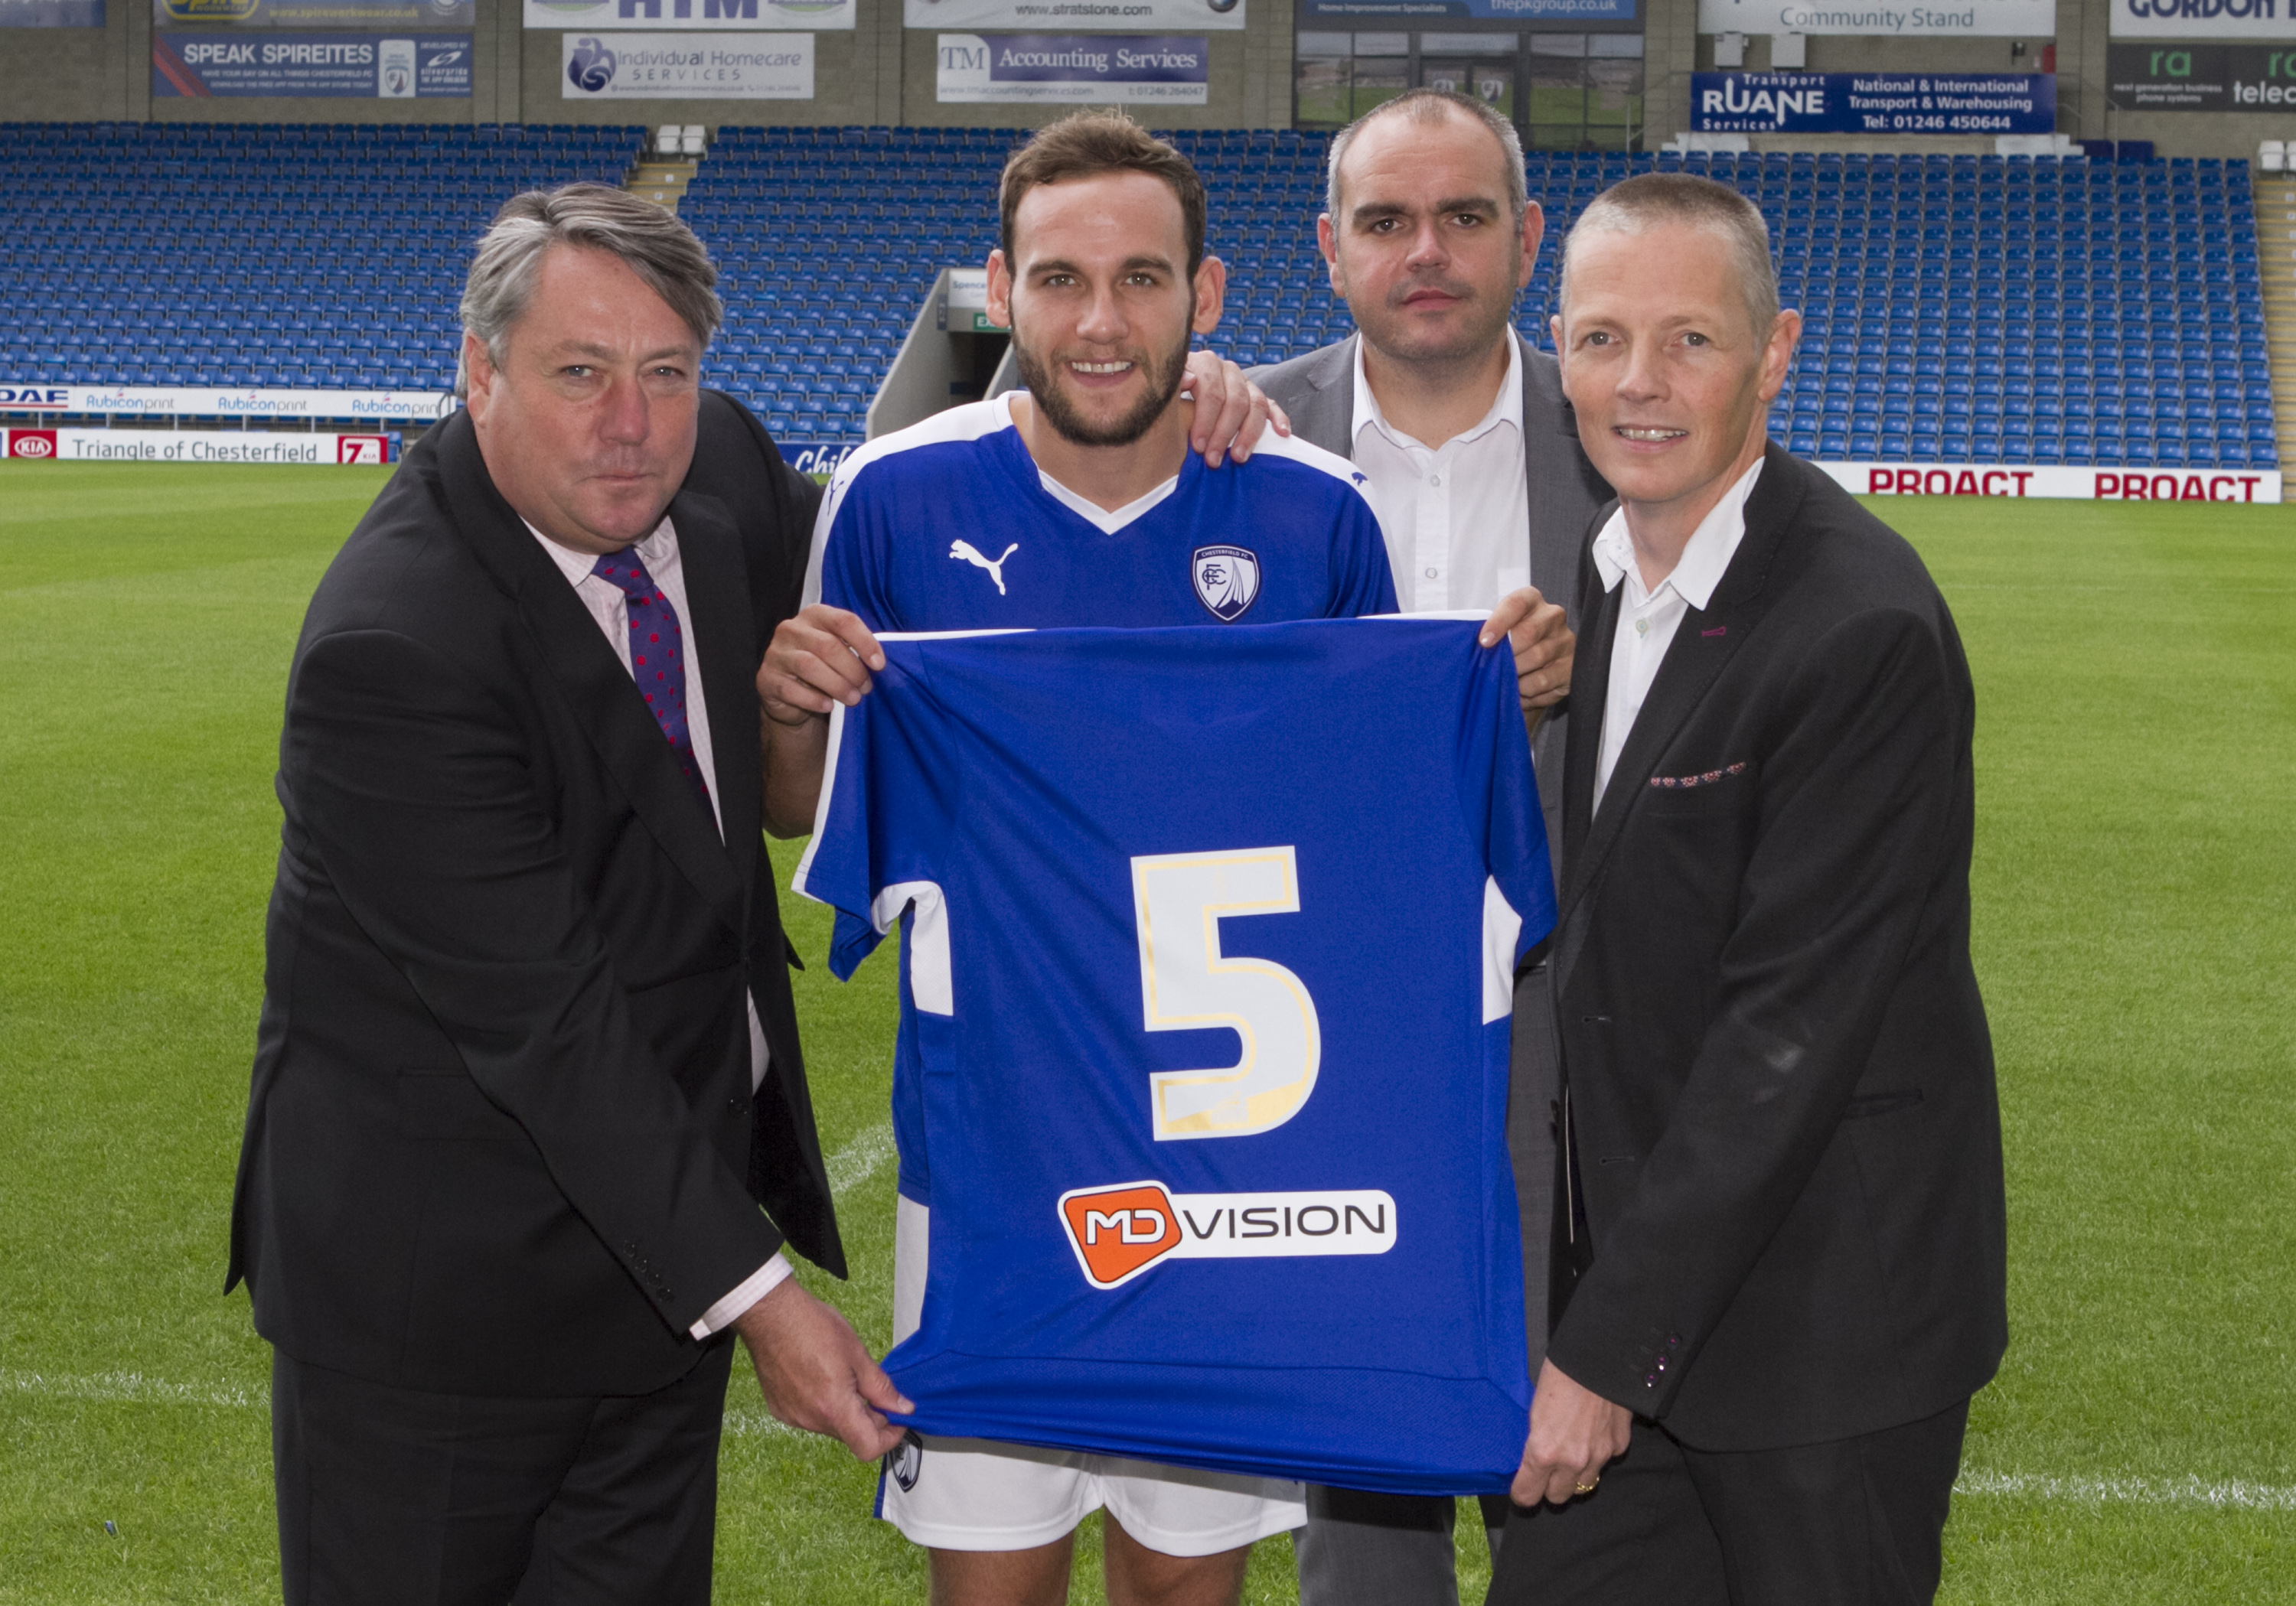 Chesterfield's press releases announcing their new signings are just brilliant